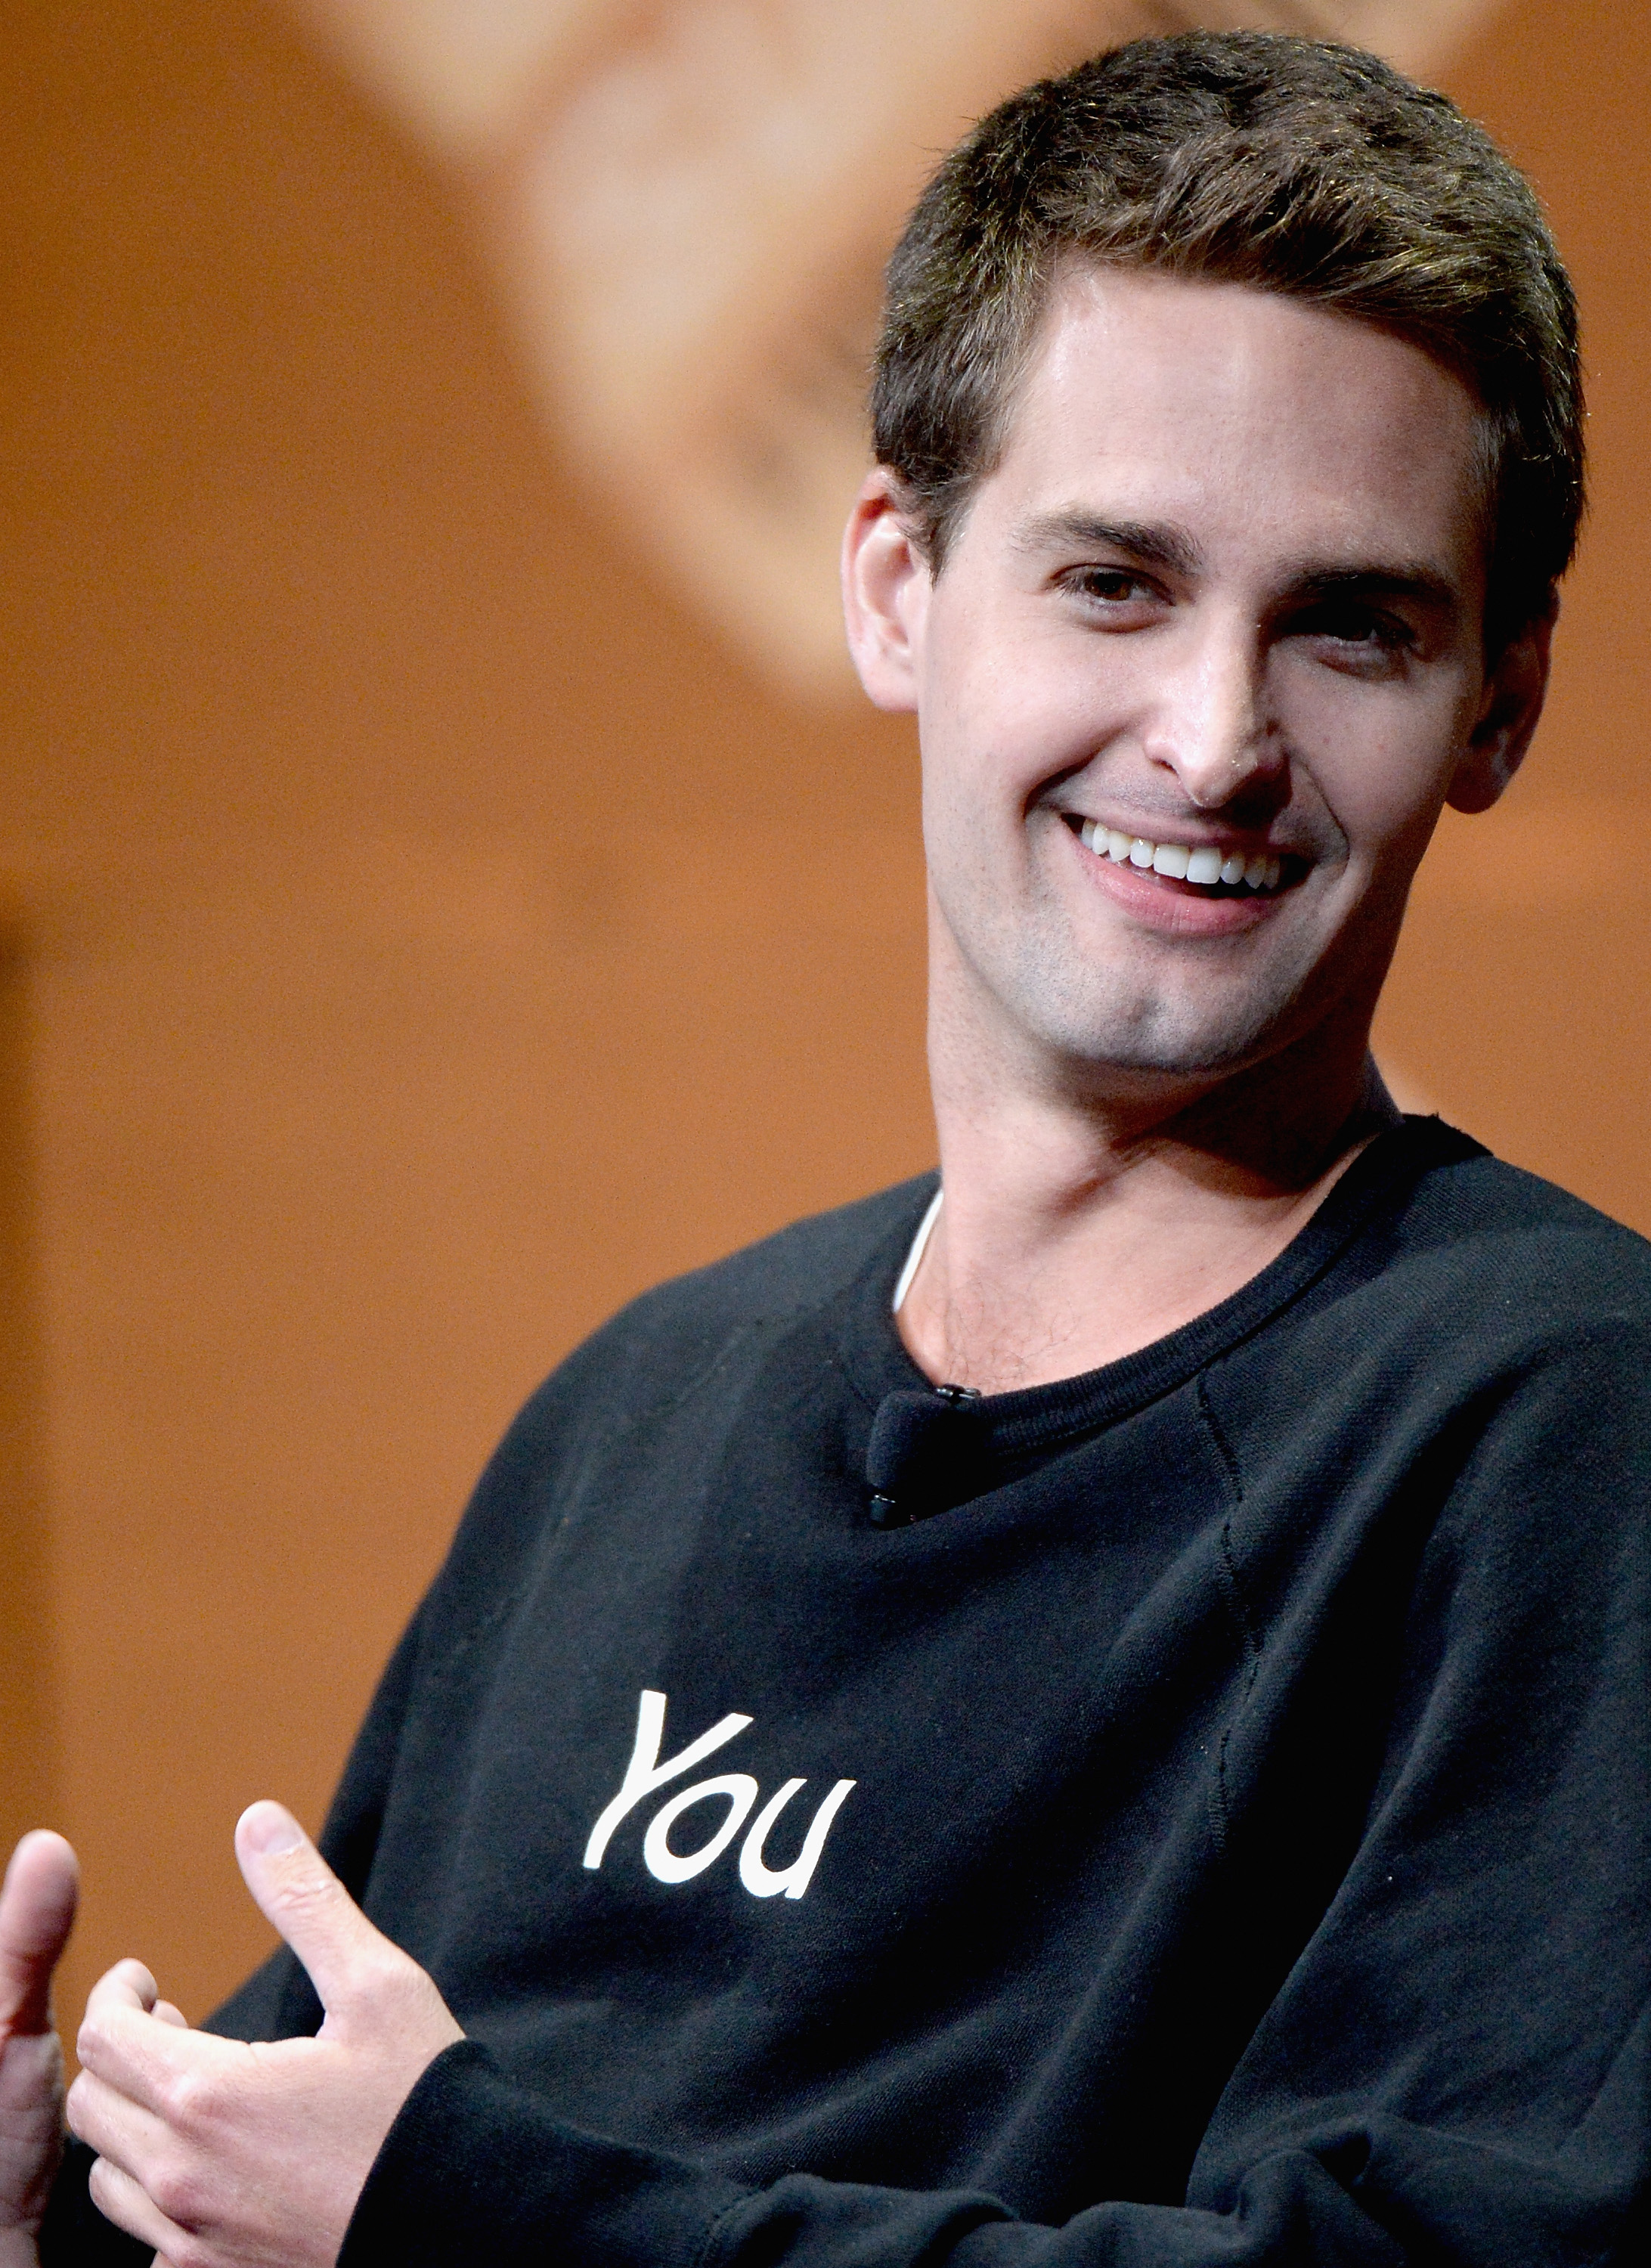 Snapchat CEO Evan Spiegel speaks onstage during  Disrupting Information and Communication  at the Vanity Fair New Establishment Summit on Oct. 8, 2014 in San Francisco.